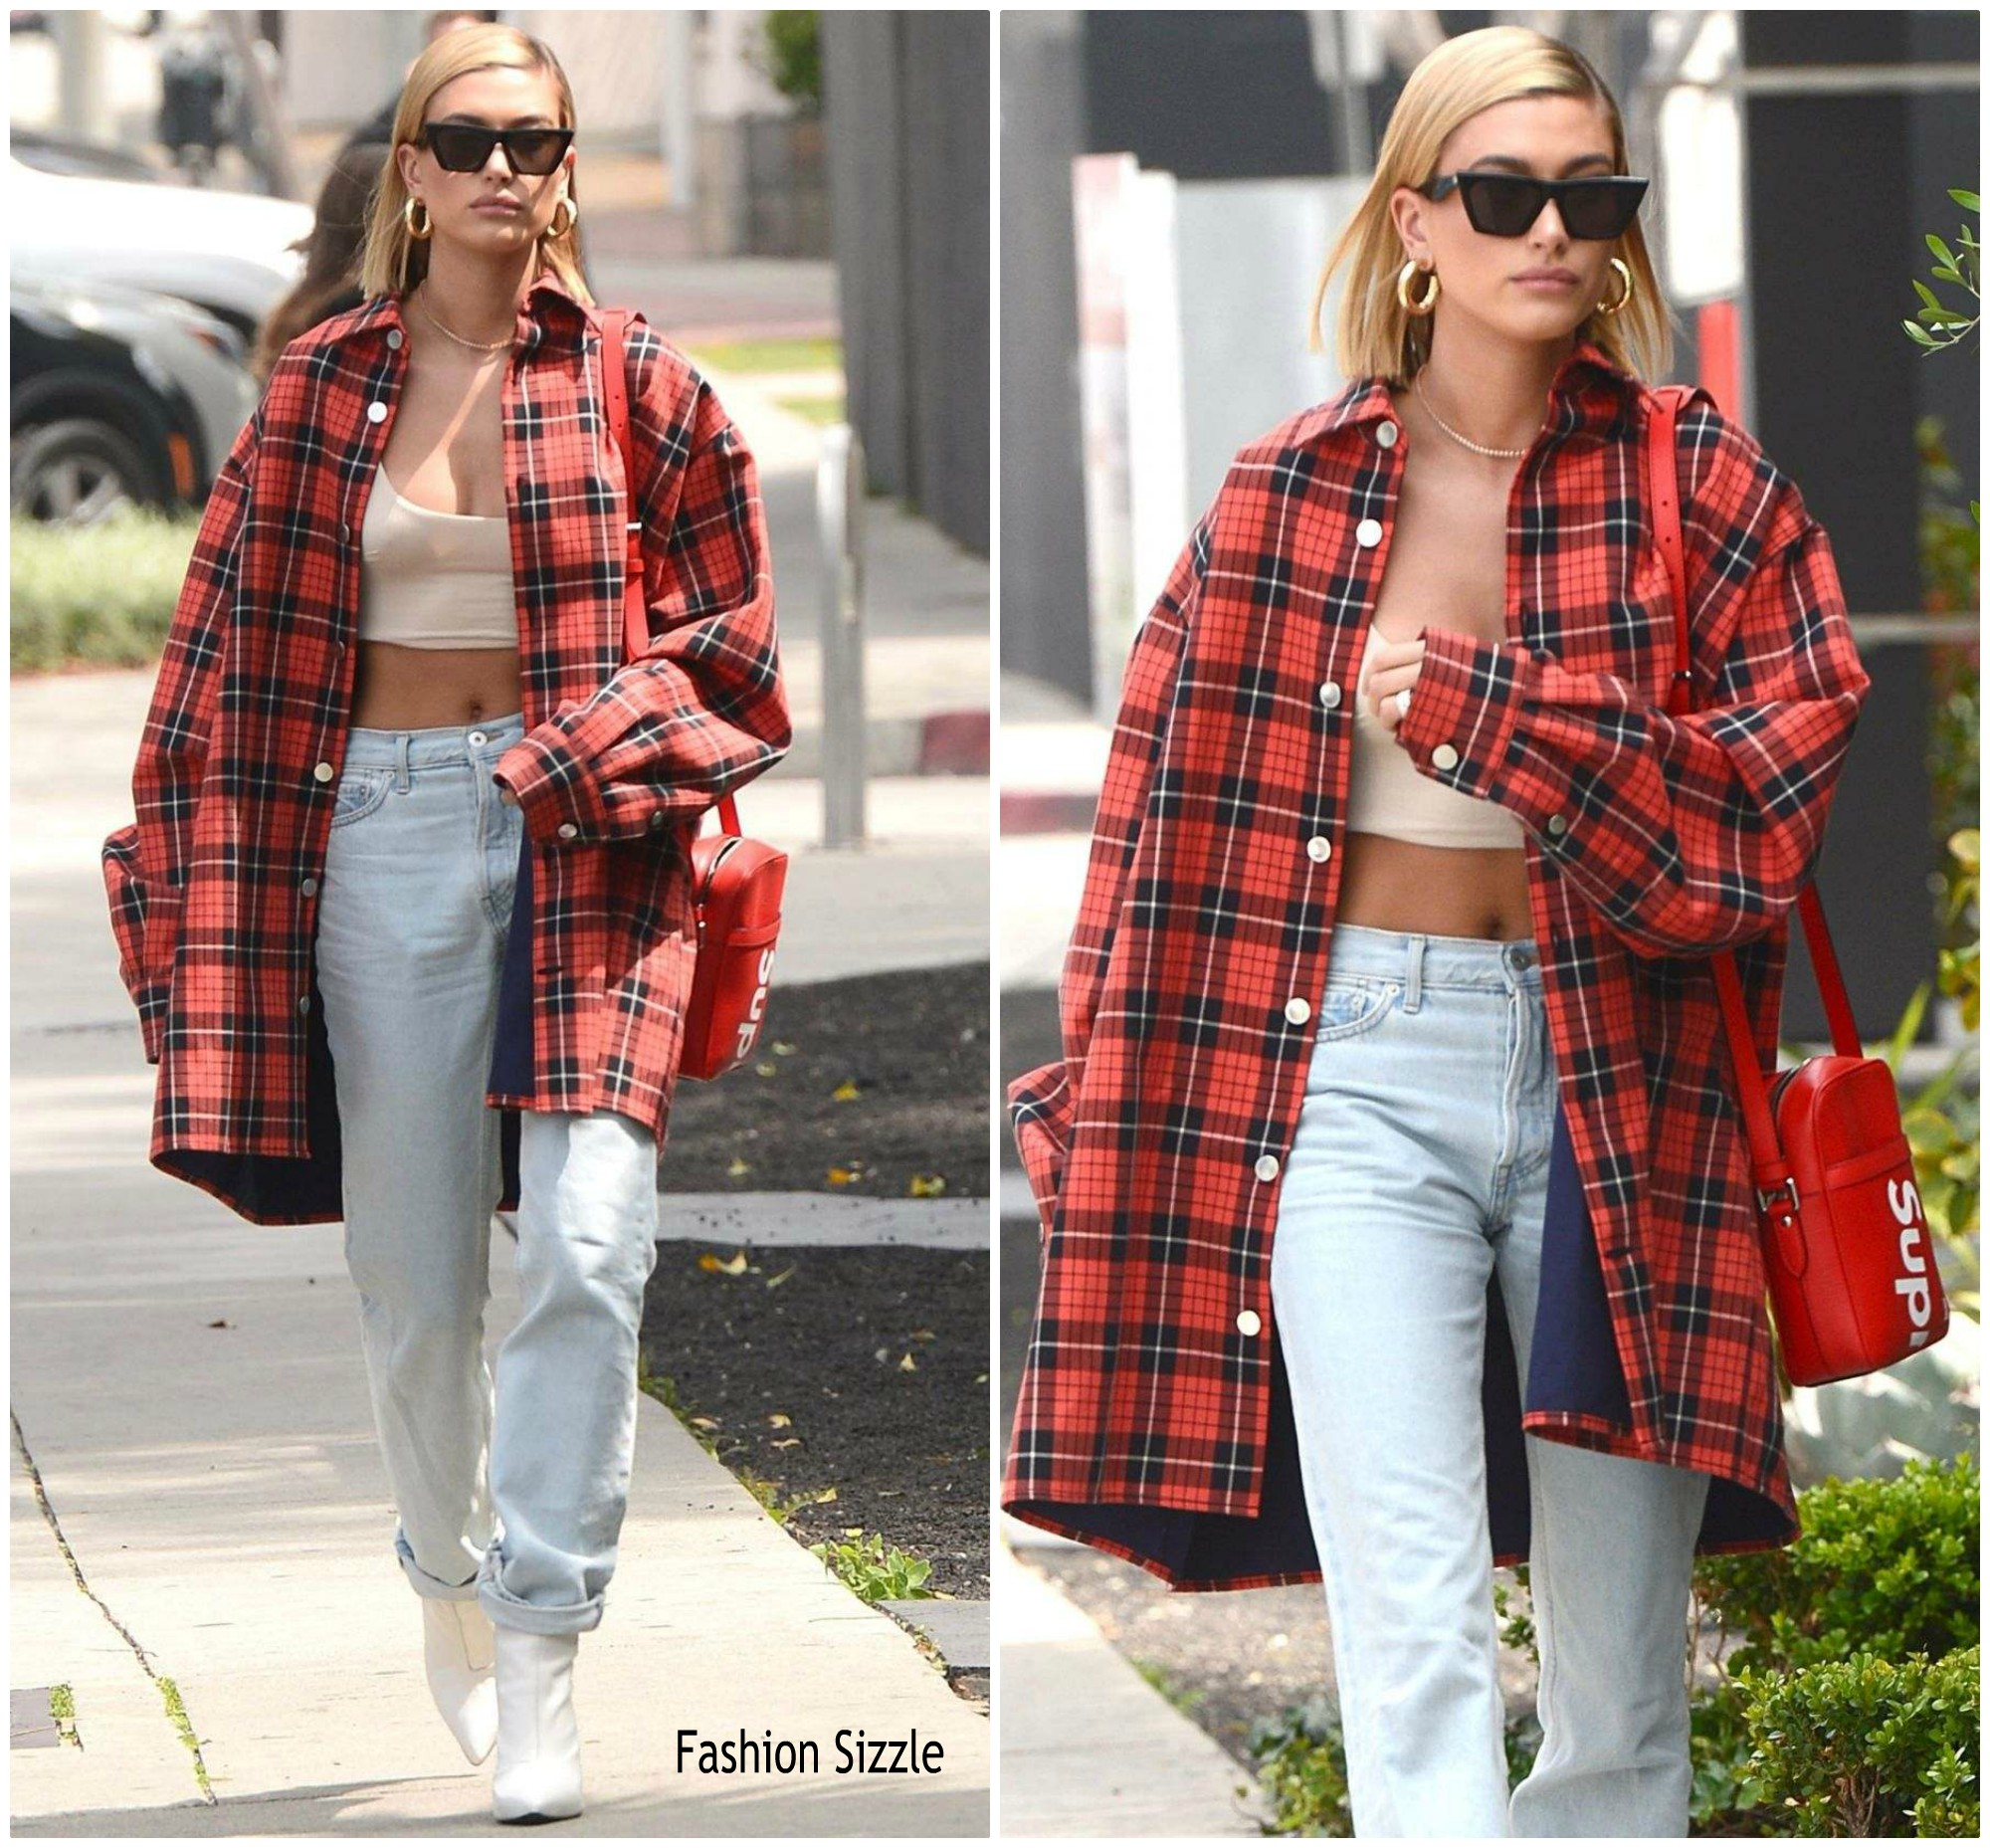 hailey-baldwin-in-raf-simons-shirt-out-in-los-angeles